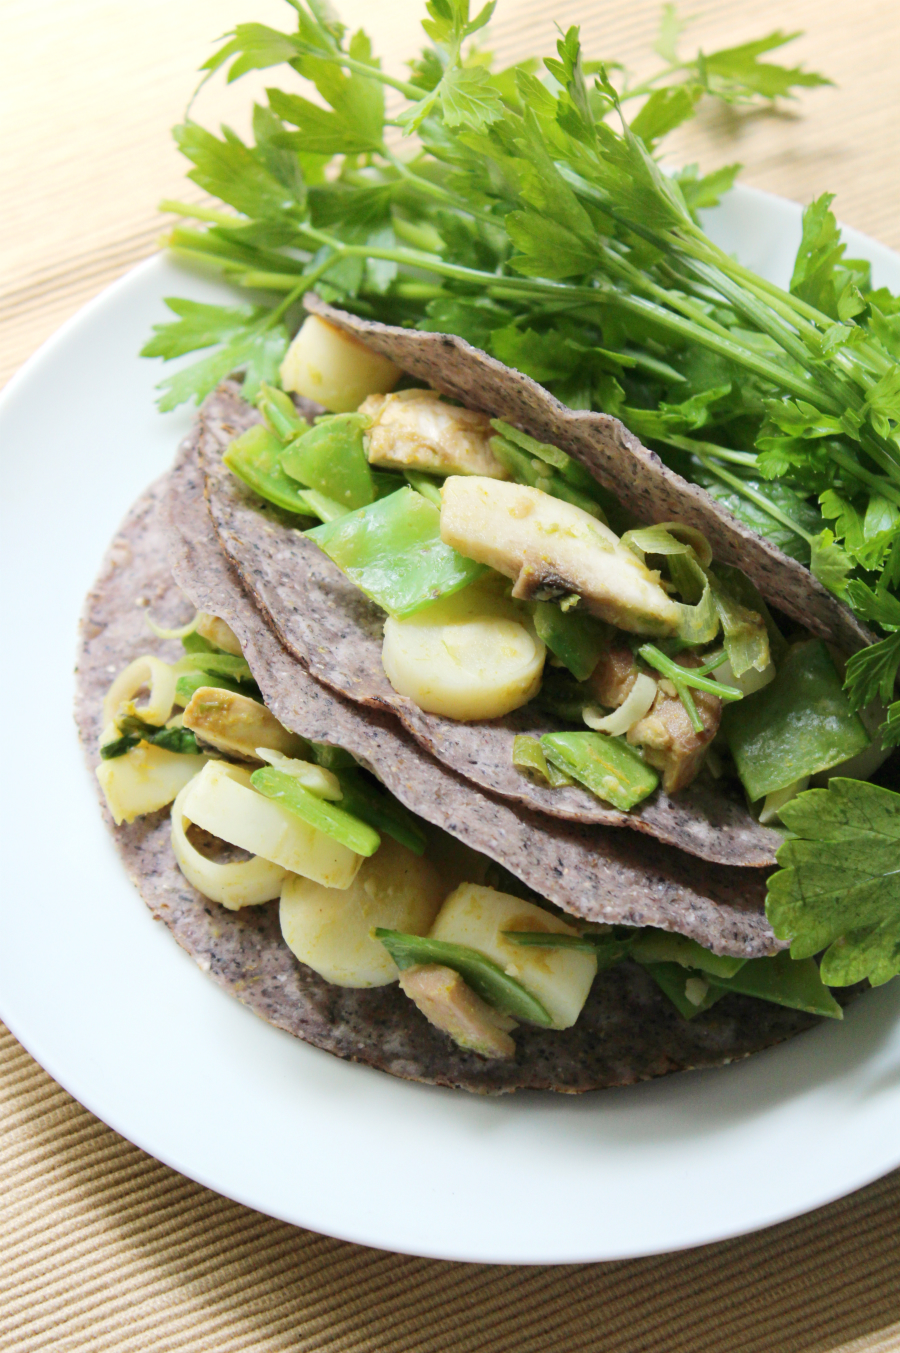 Thai Green Curry Tacos | Strength and Sunshine @RebeccaGF666 A new twist on tacos! Thai Green Curry Tacos are a fabulous Asian/Mexican fusion recipe to try. Gluten-free, vegan, and allergy-friendly, these tacos will make for a delicious and healthy dinner or lunch!